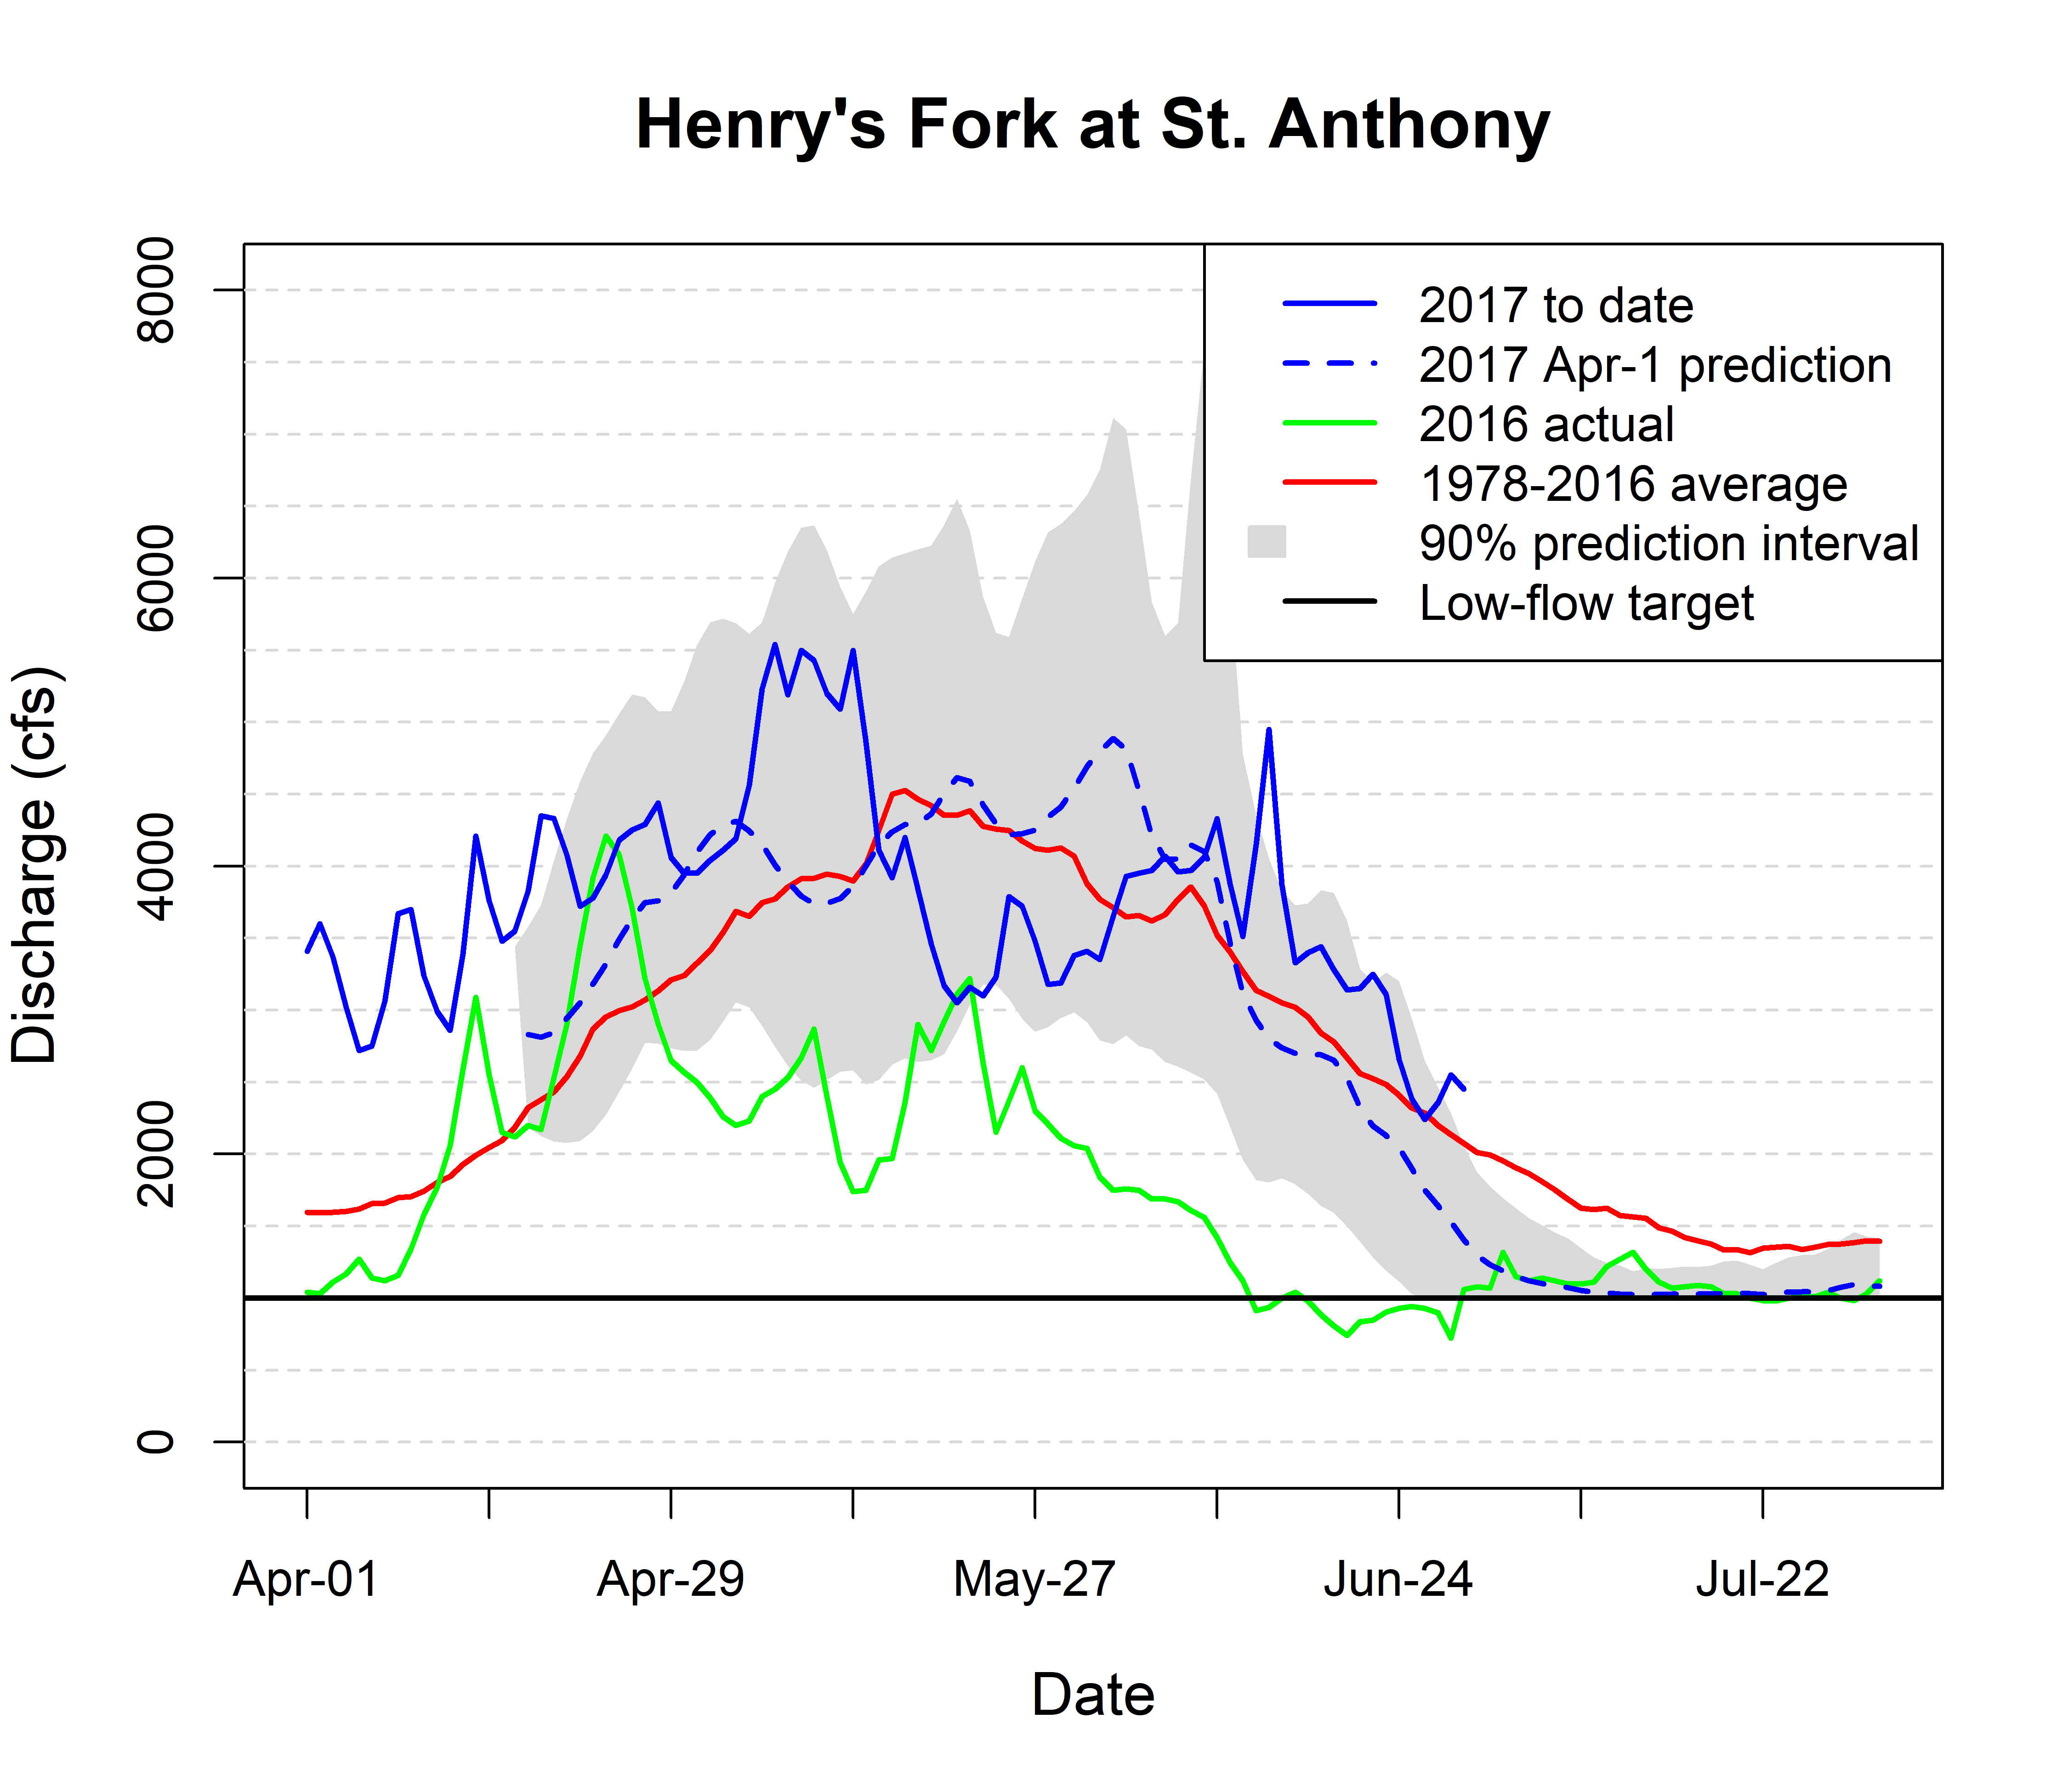 Graph of streamfow in the Henry's Fork at St. Anthony